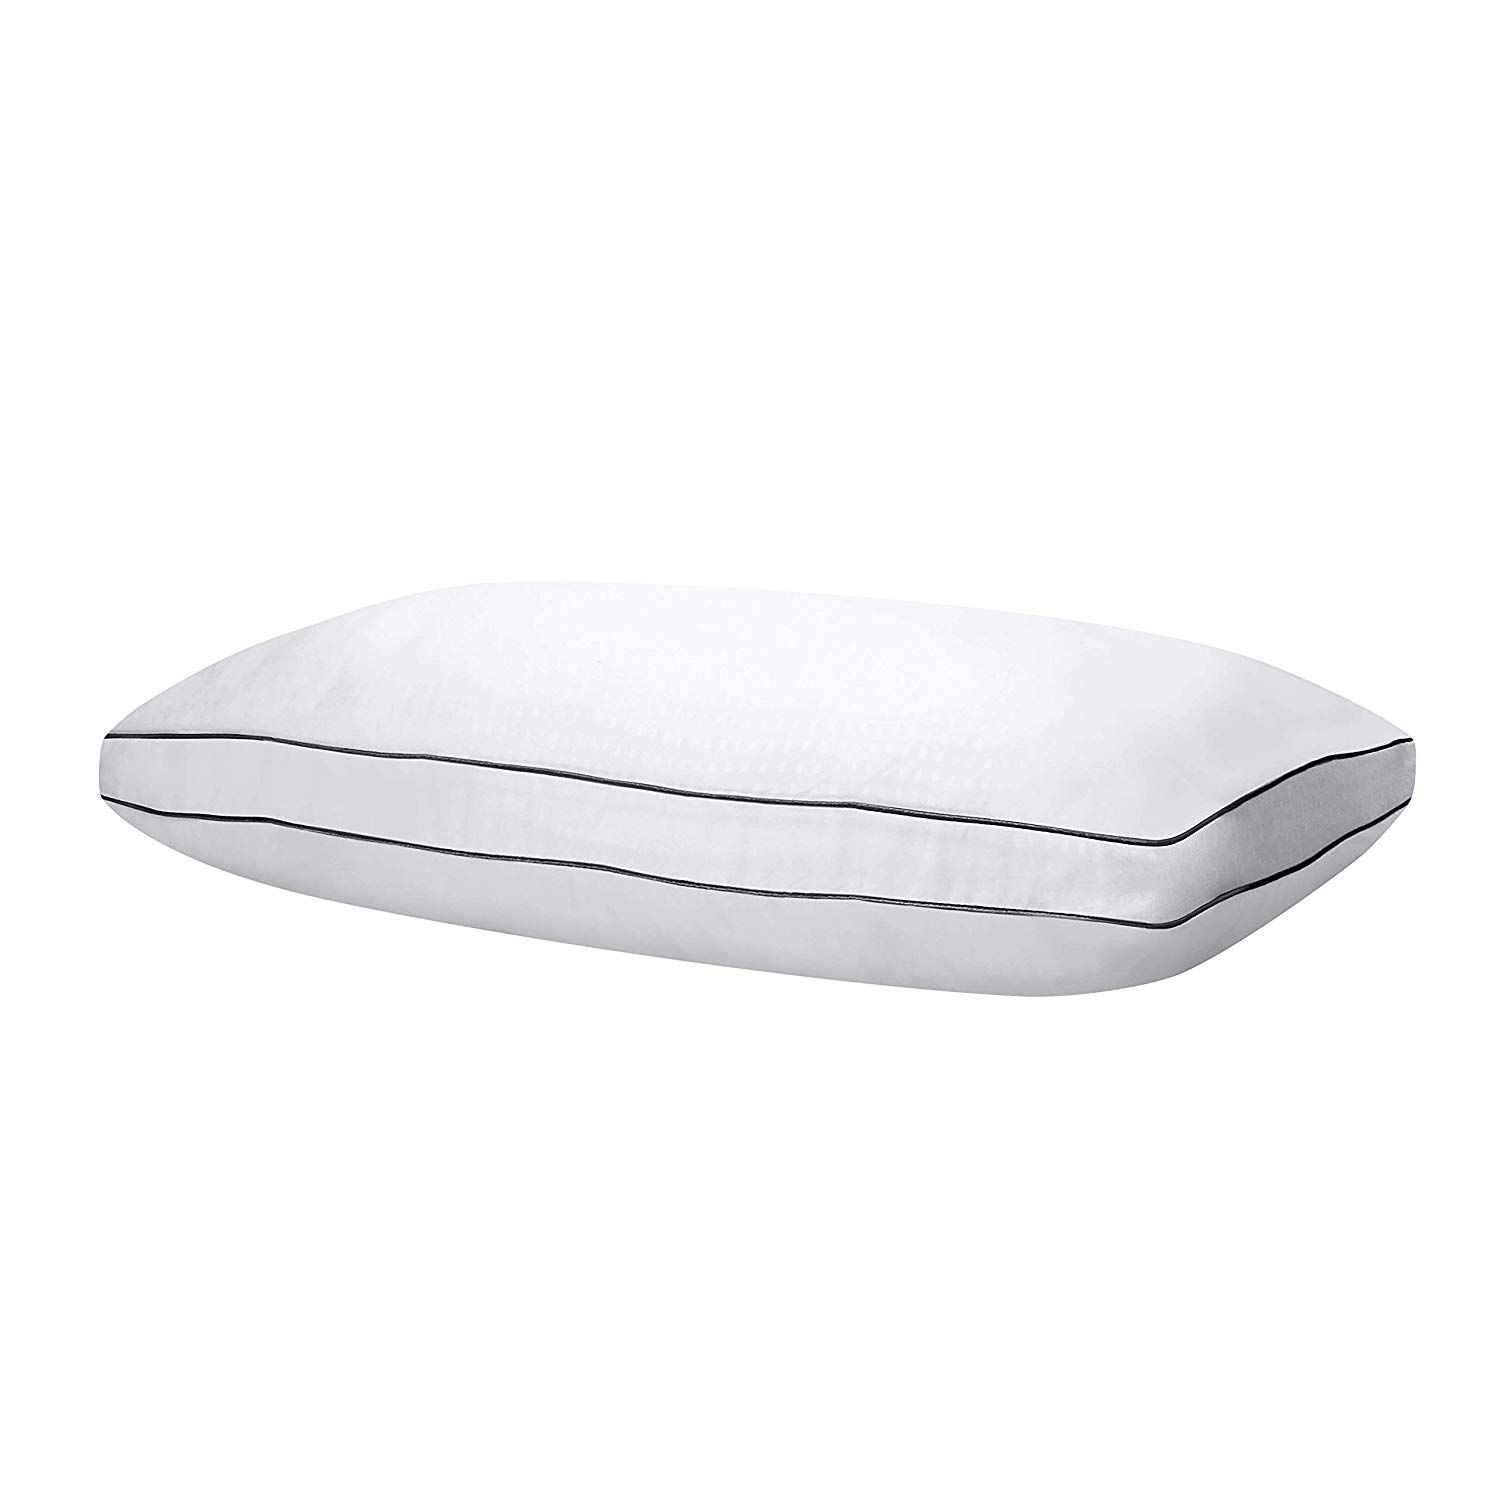 Hydraluxe Premium Molded Foam Bed Pillow Standard White Comfort Revolution comfort revolution memory foam pillow review